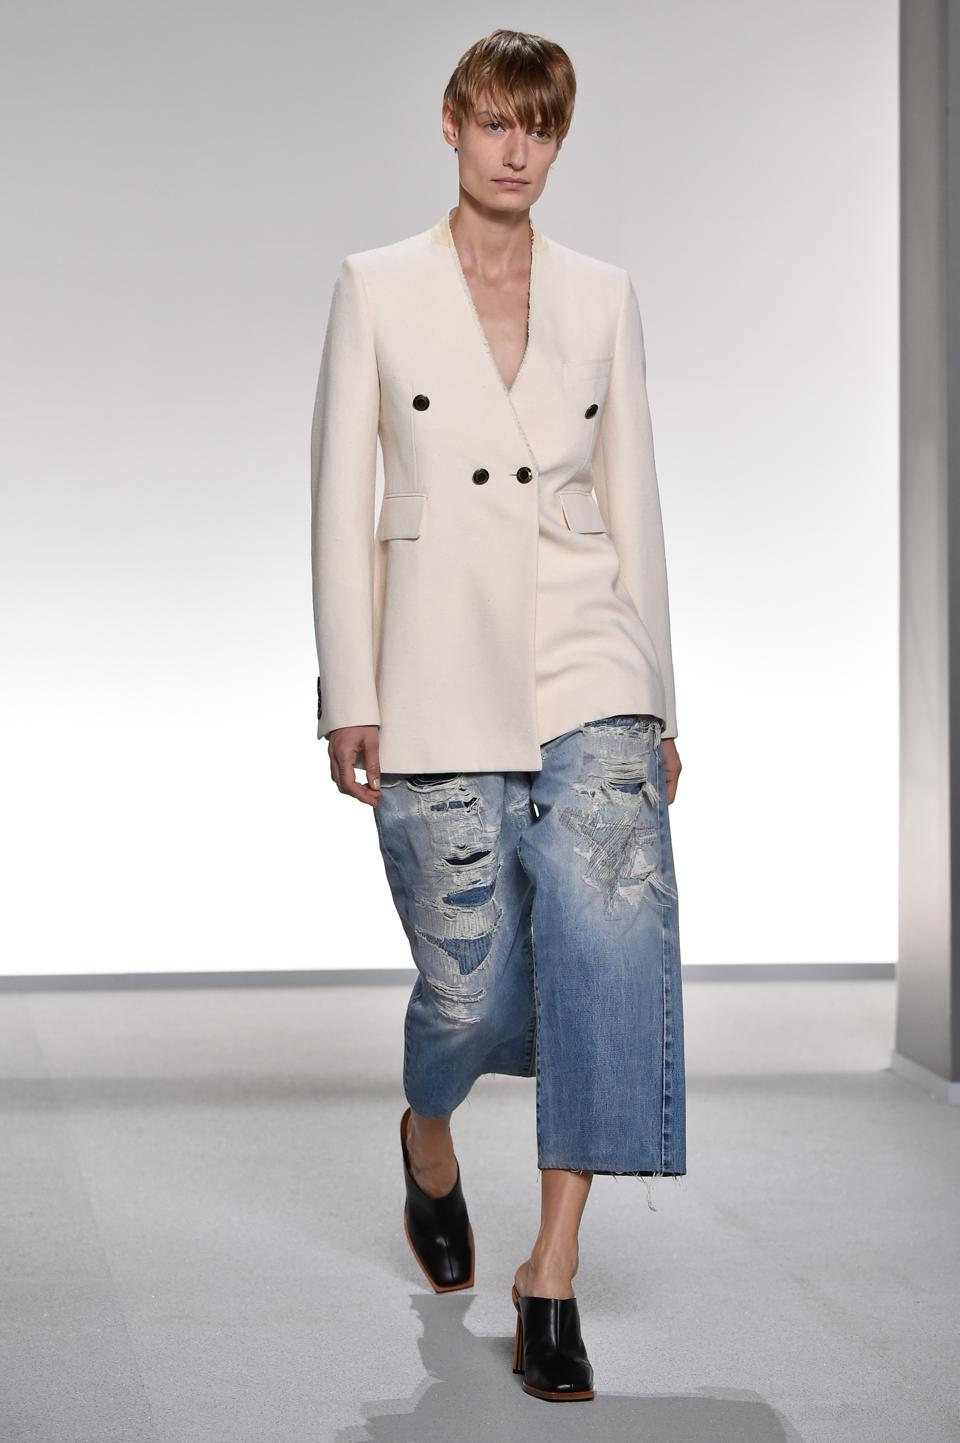 2020 Spring Trends.Top 10 Trends From The Spring 2020 Fashion Shows